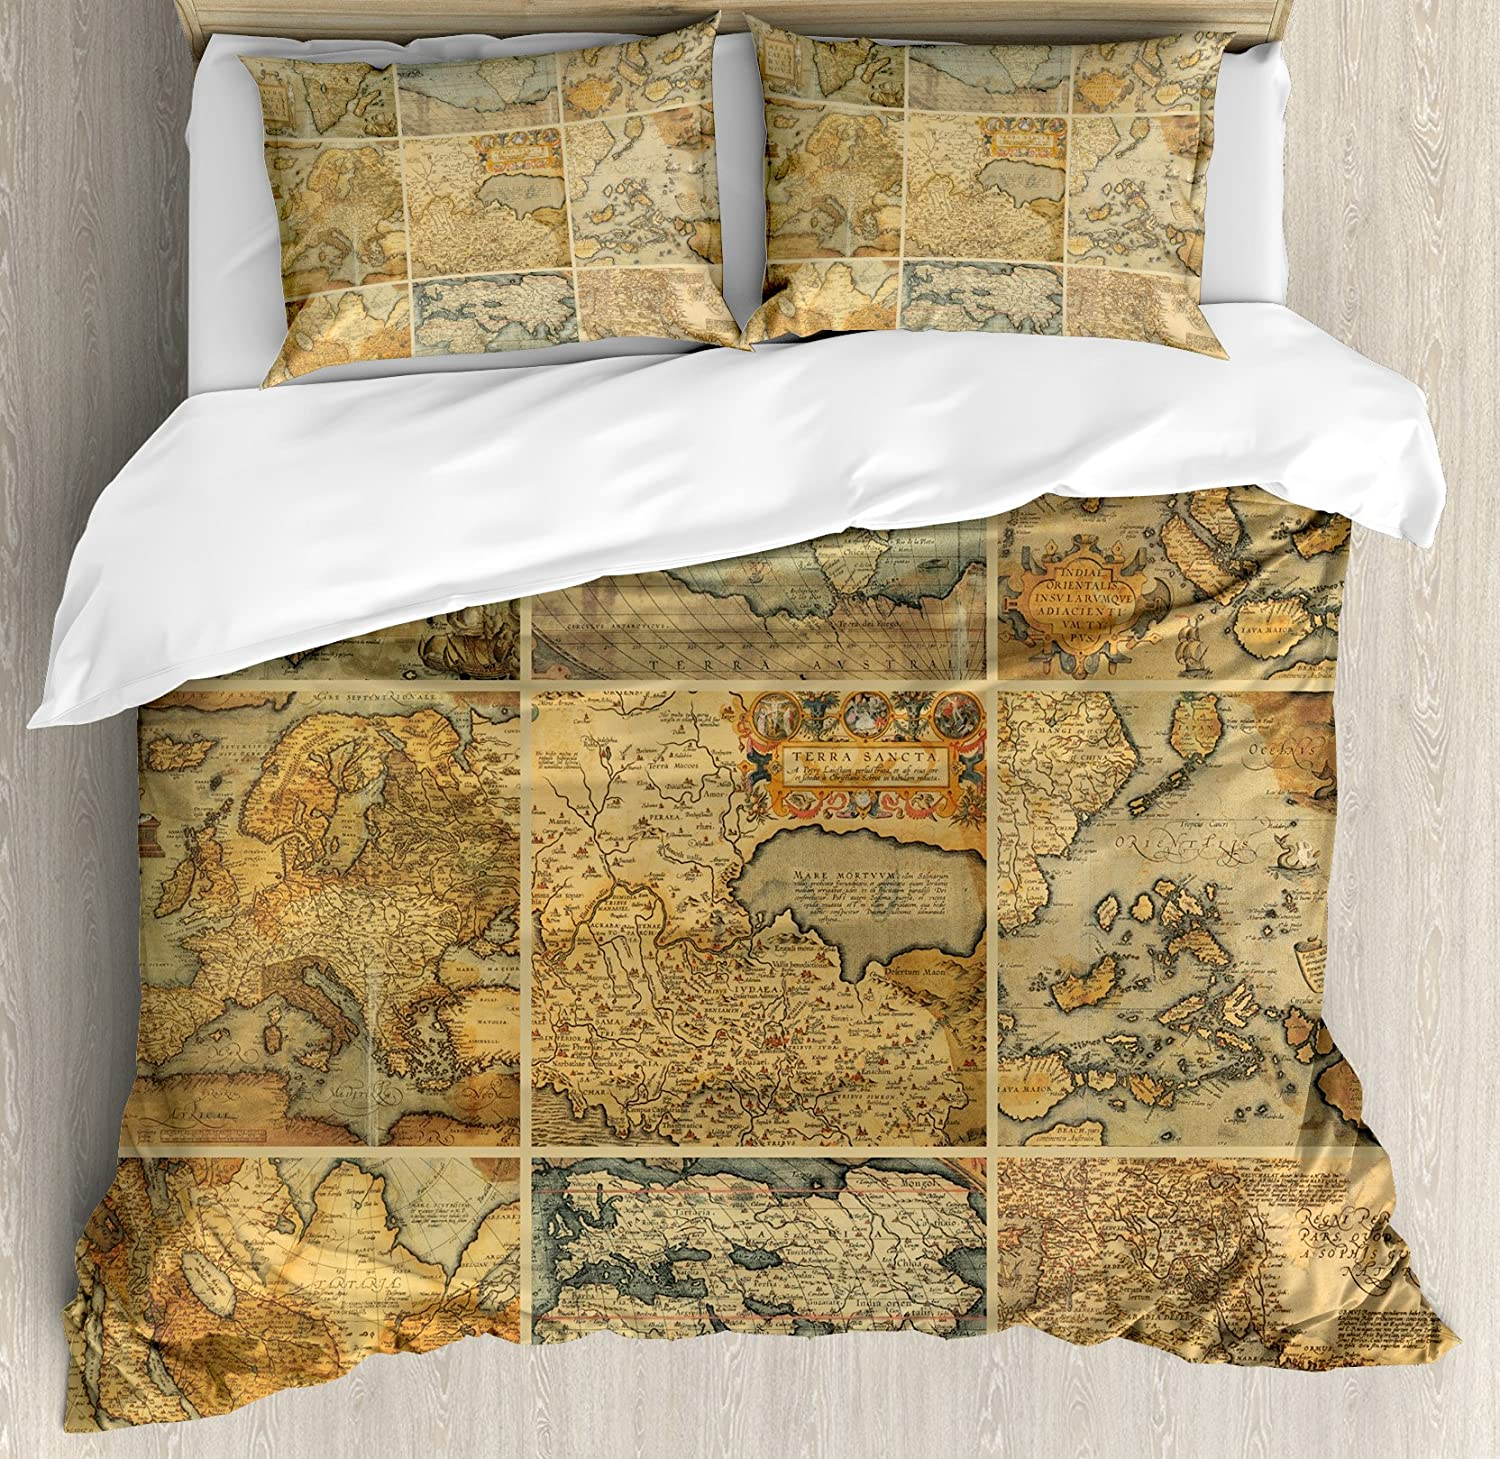 7509b55335e6a Ambesonne World Map Duvet Cover Set Queen Size, Collage with Antique Old World  Maps Vintage Ancient Collection of Civilization, Decorative 3 Piece Bedding  ...